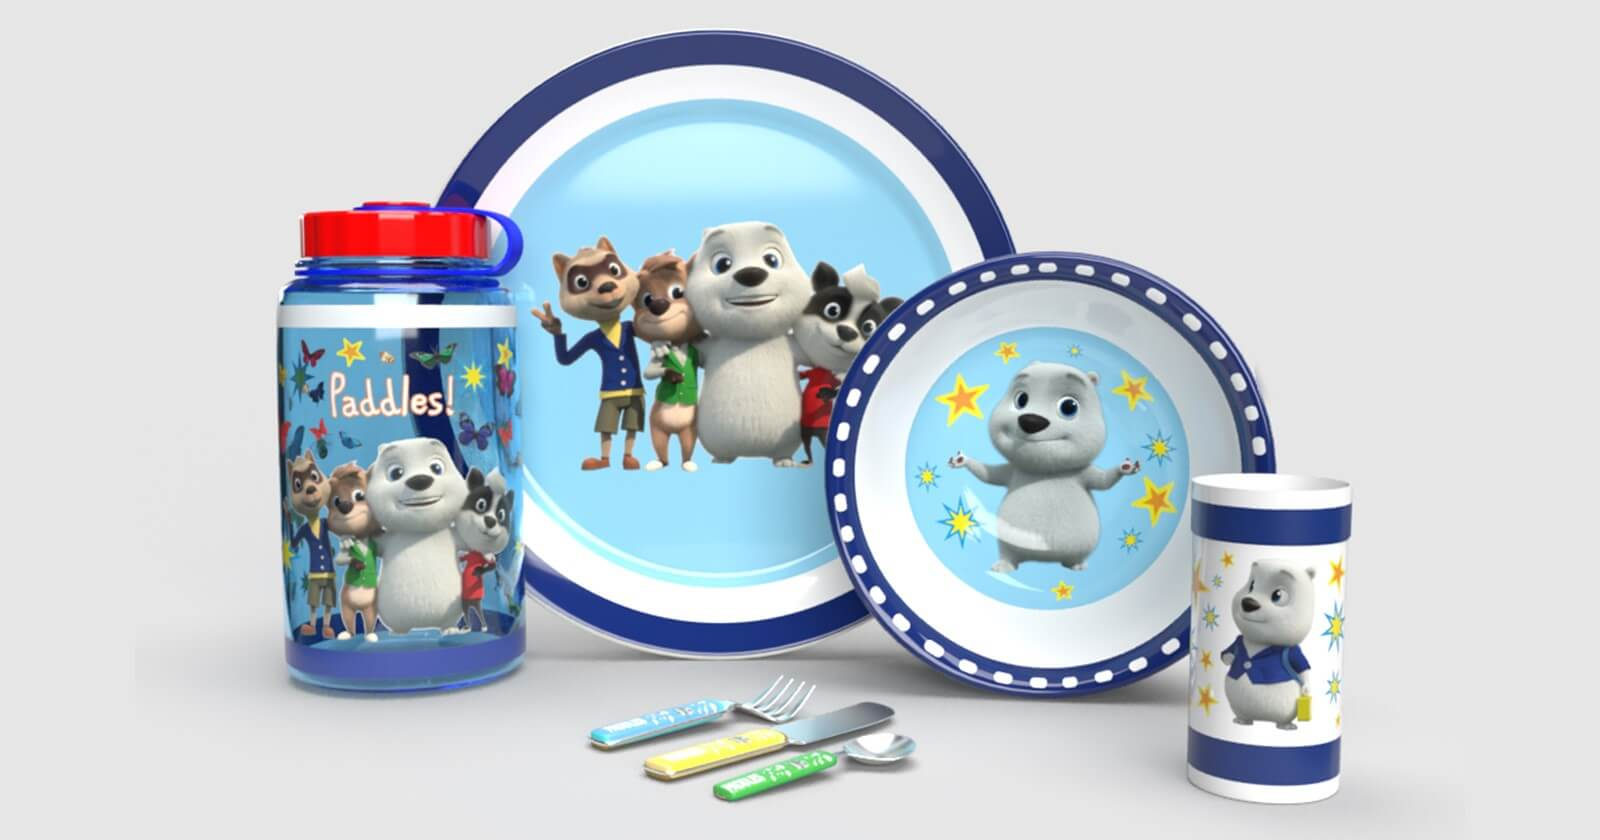 FuturumKids Announces Licensing and Merchandising for Paddles image